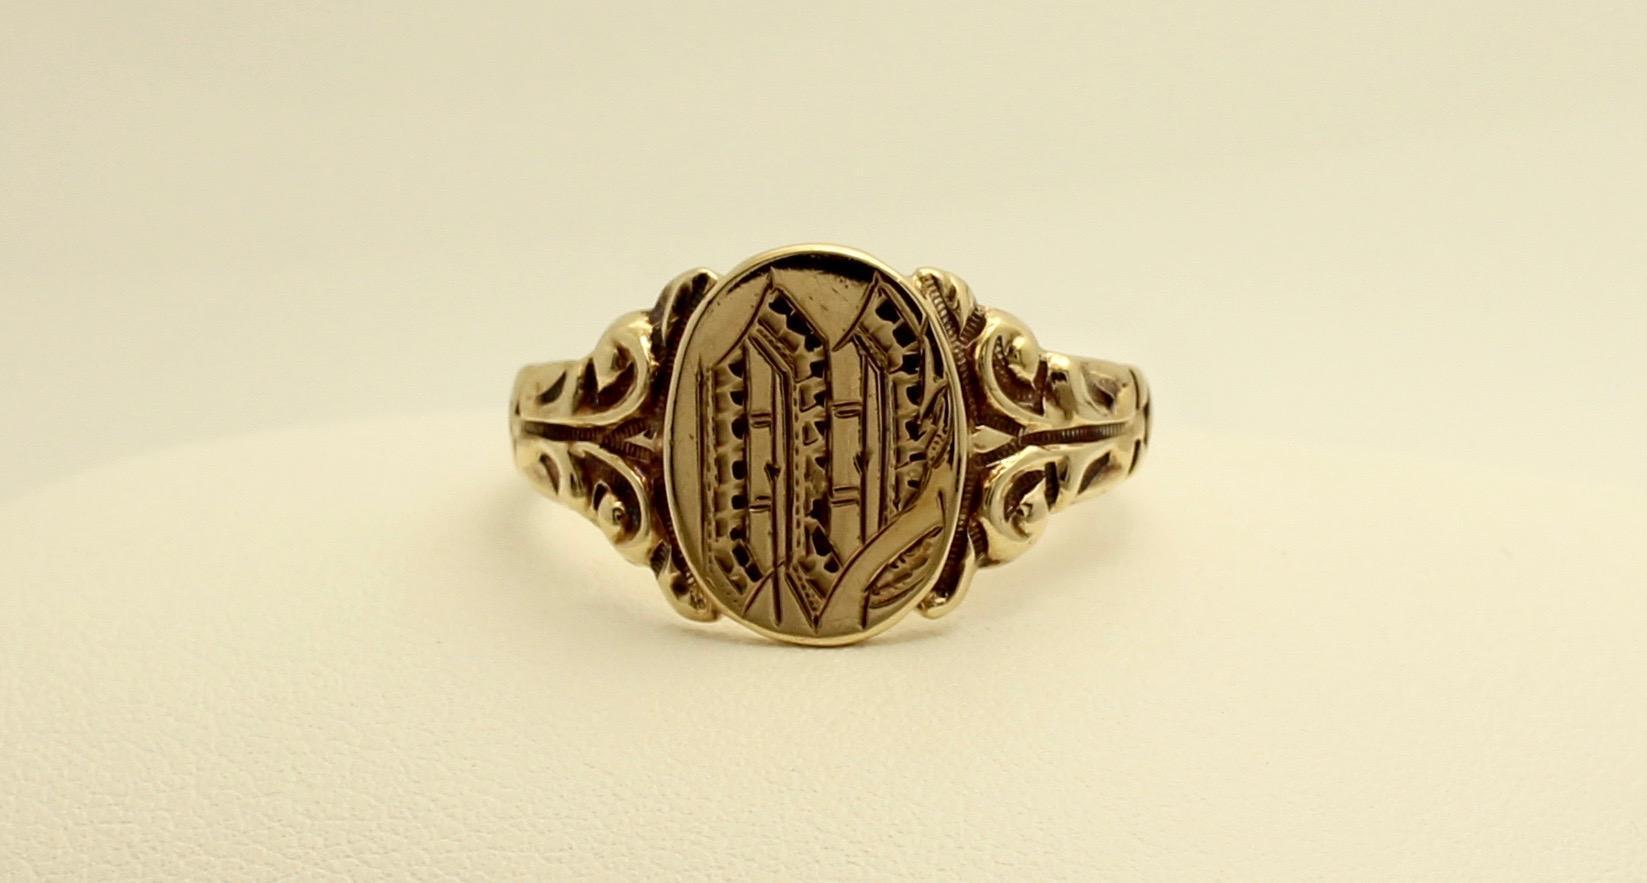 vintage style 10k yellow gold signet ring size 9